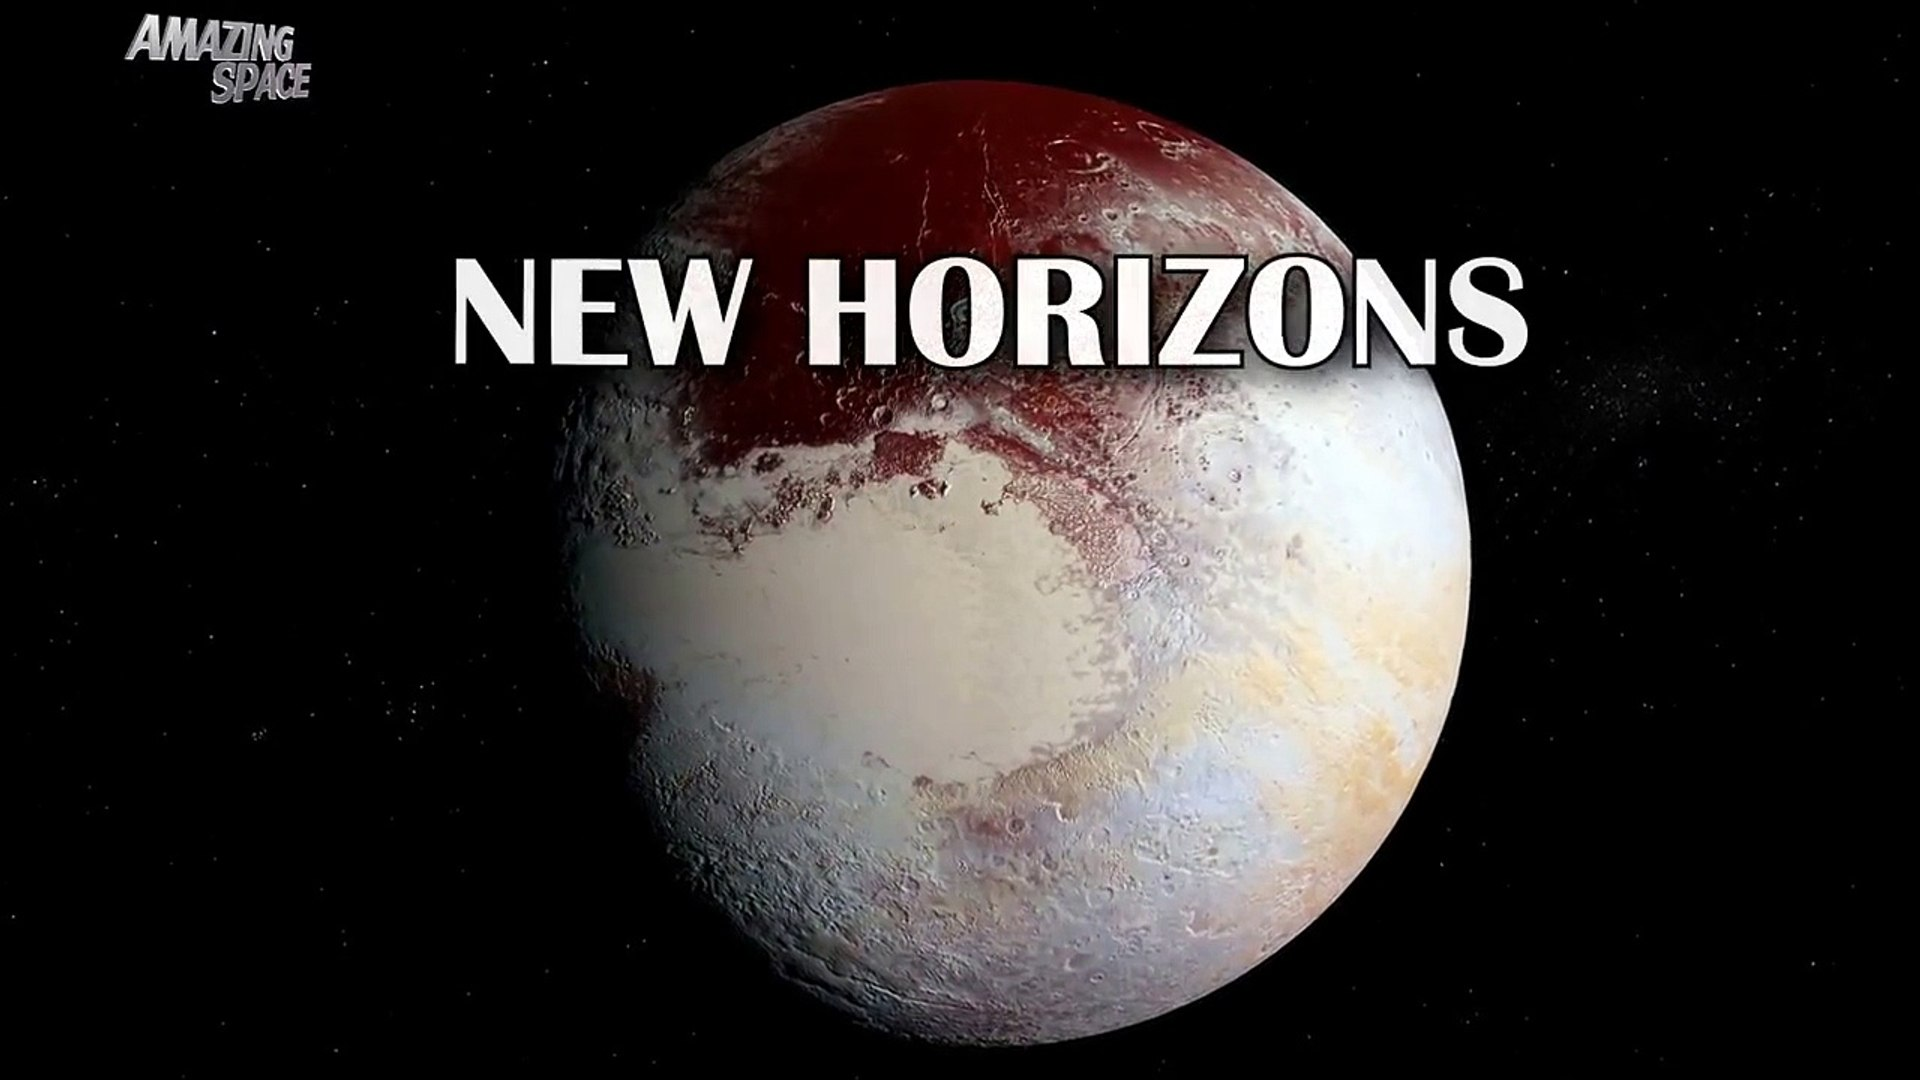 Videos of Space NASA Images A closer look at Pluto New Horizons